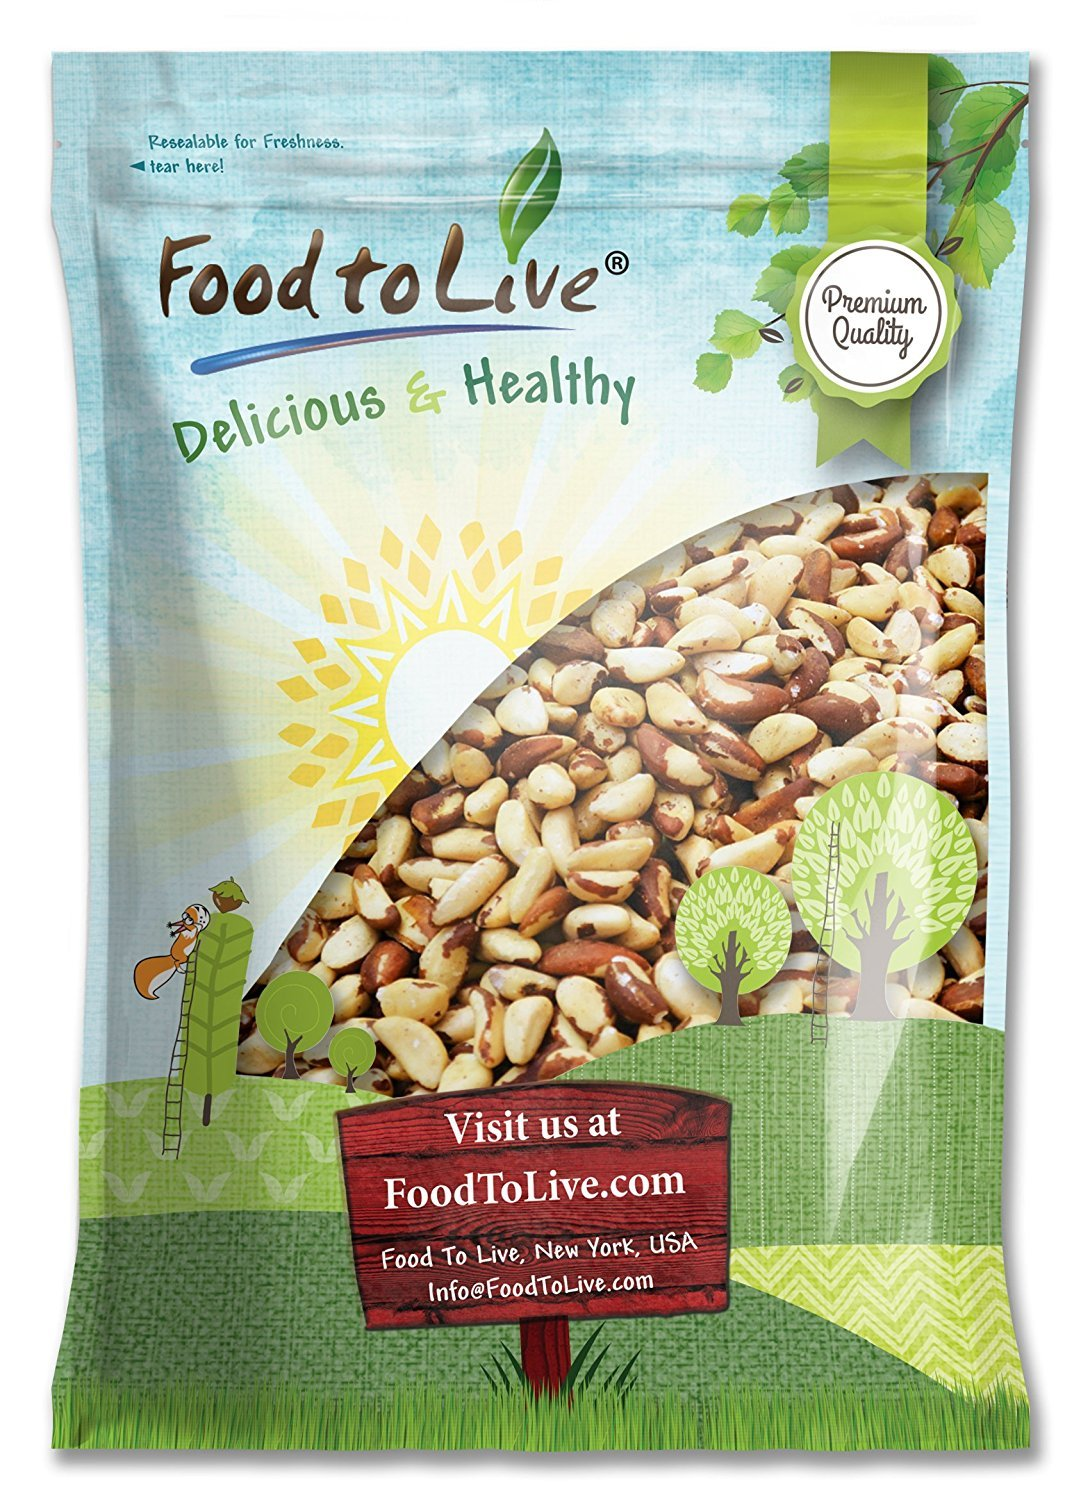 Brazil Nuts, 12 Pounds - Raw, Whole, No Shell, Unsalted, Kosher, Vegan, Keto and Paleo Friendly, Bulk Brazilian Nut, Good Source of Selenium, Low Carb Food and Low Sodium, Great Trail Mix Snack